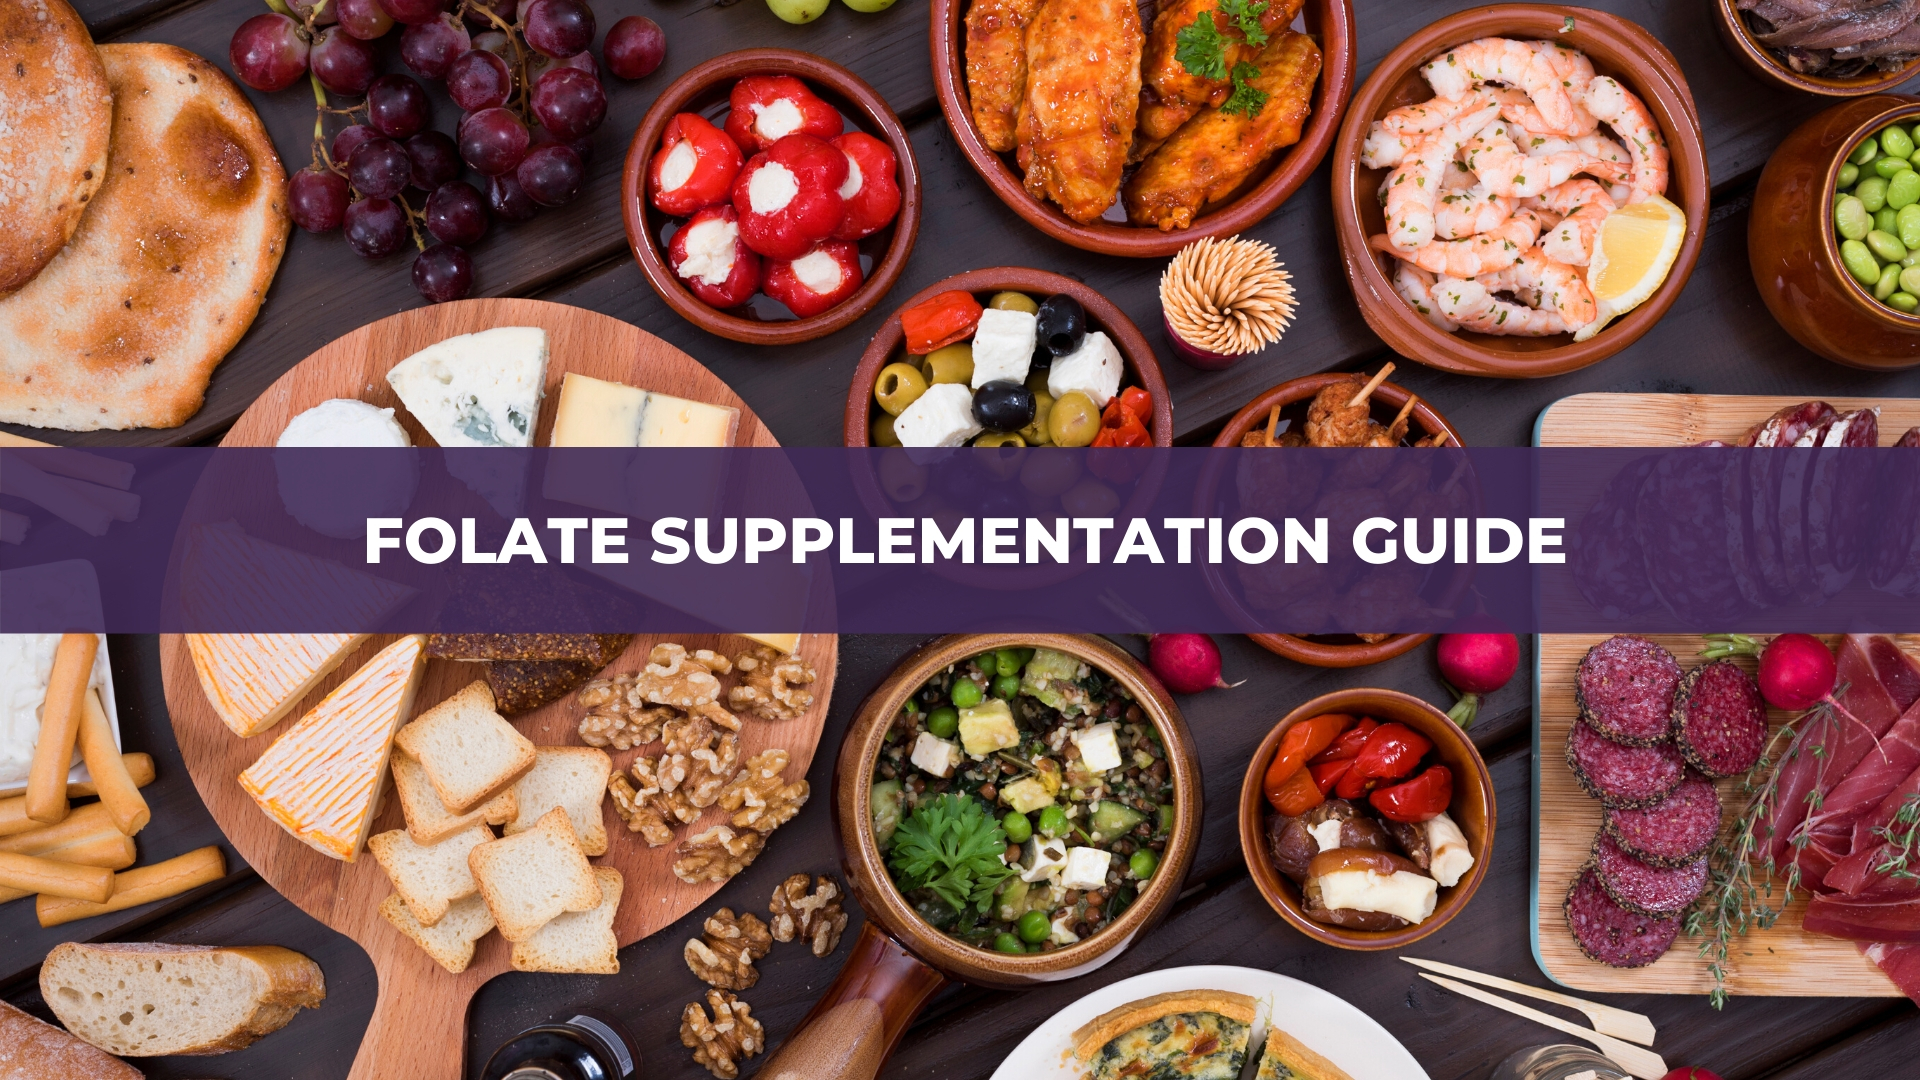 Folate Supplementation Guide